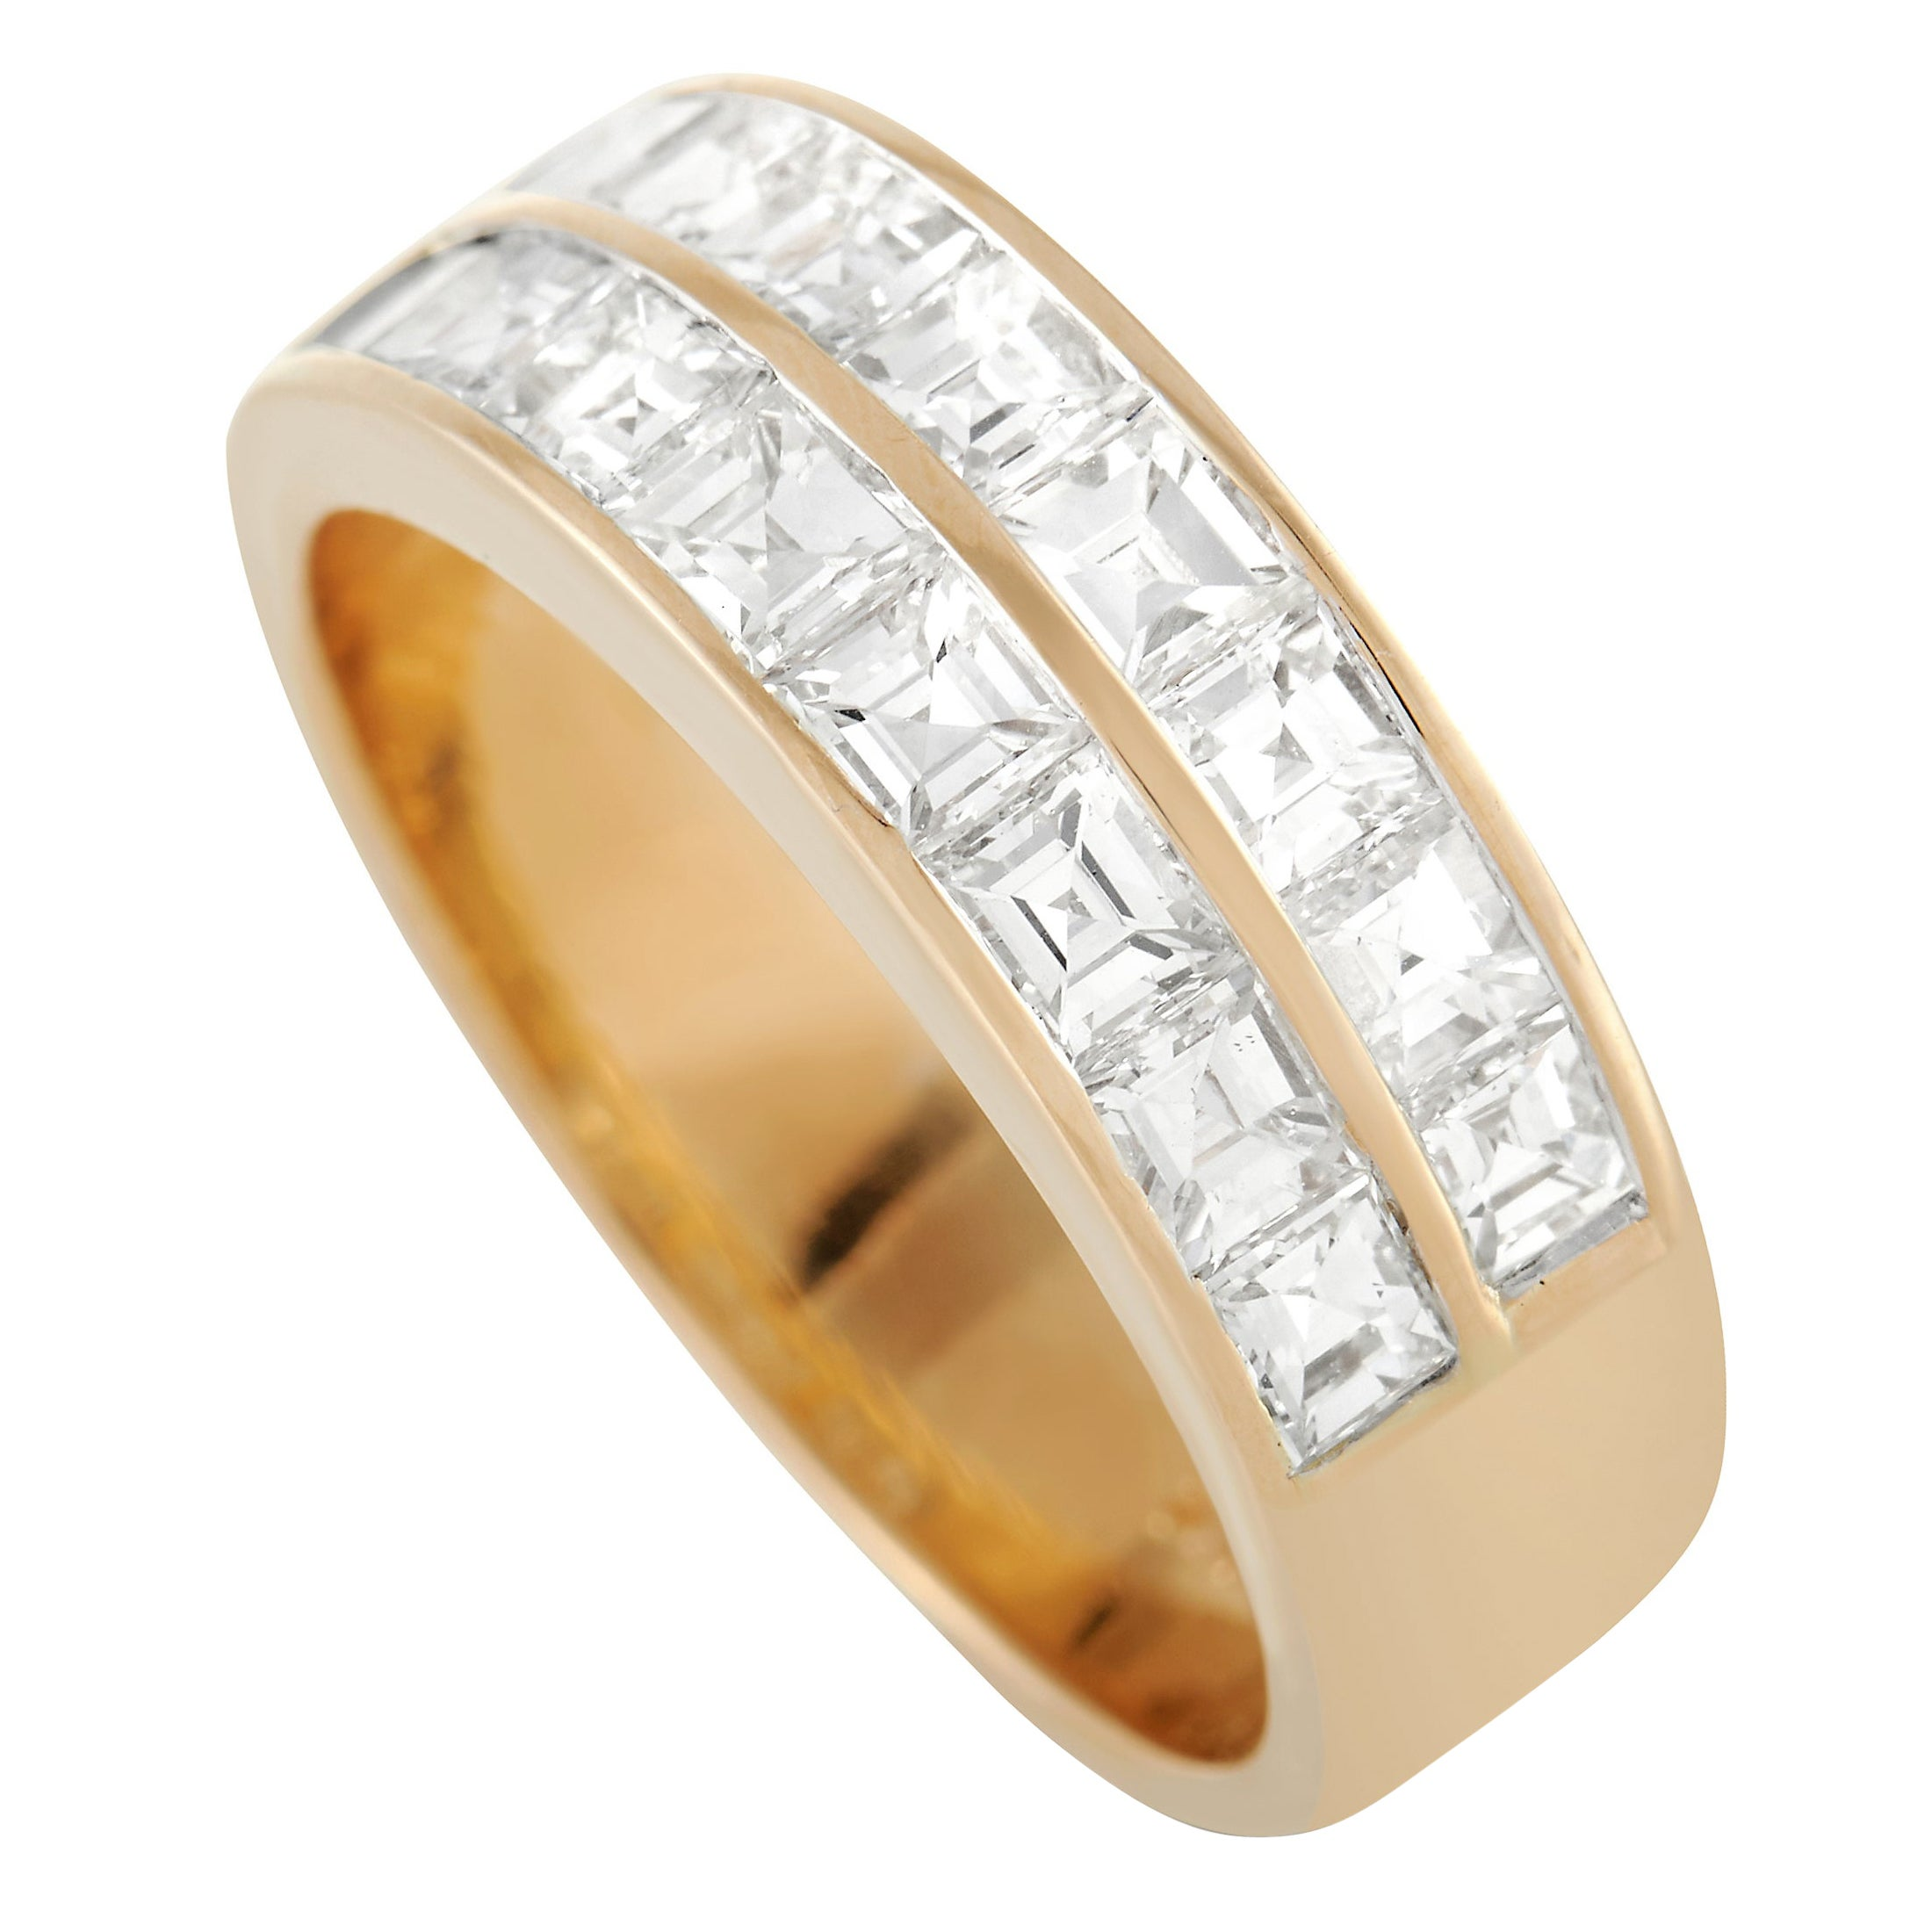 LB Exclusive 18K Yellow Gold 1.50 Ct Diamond Band Ring